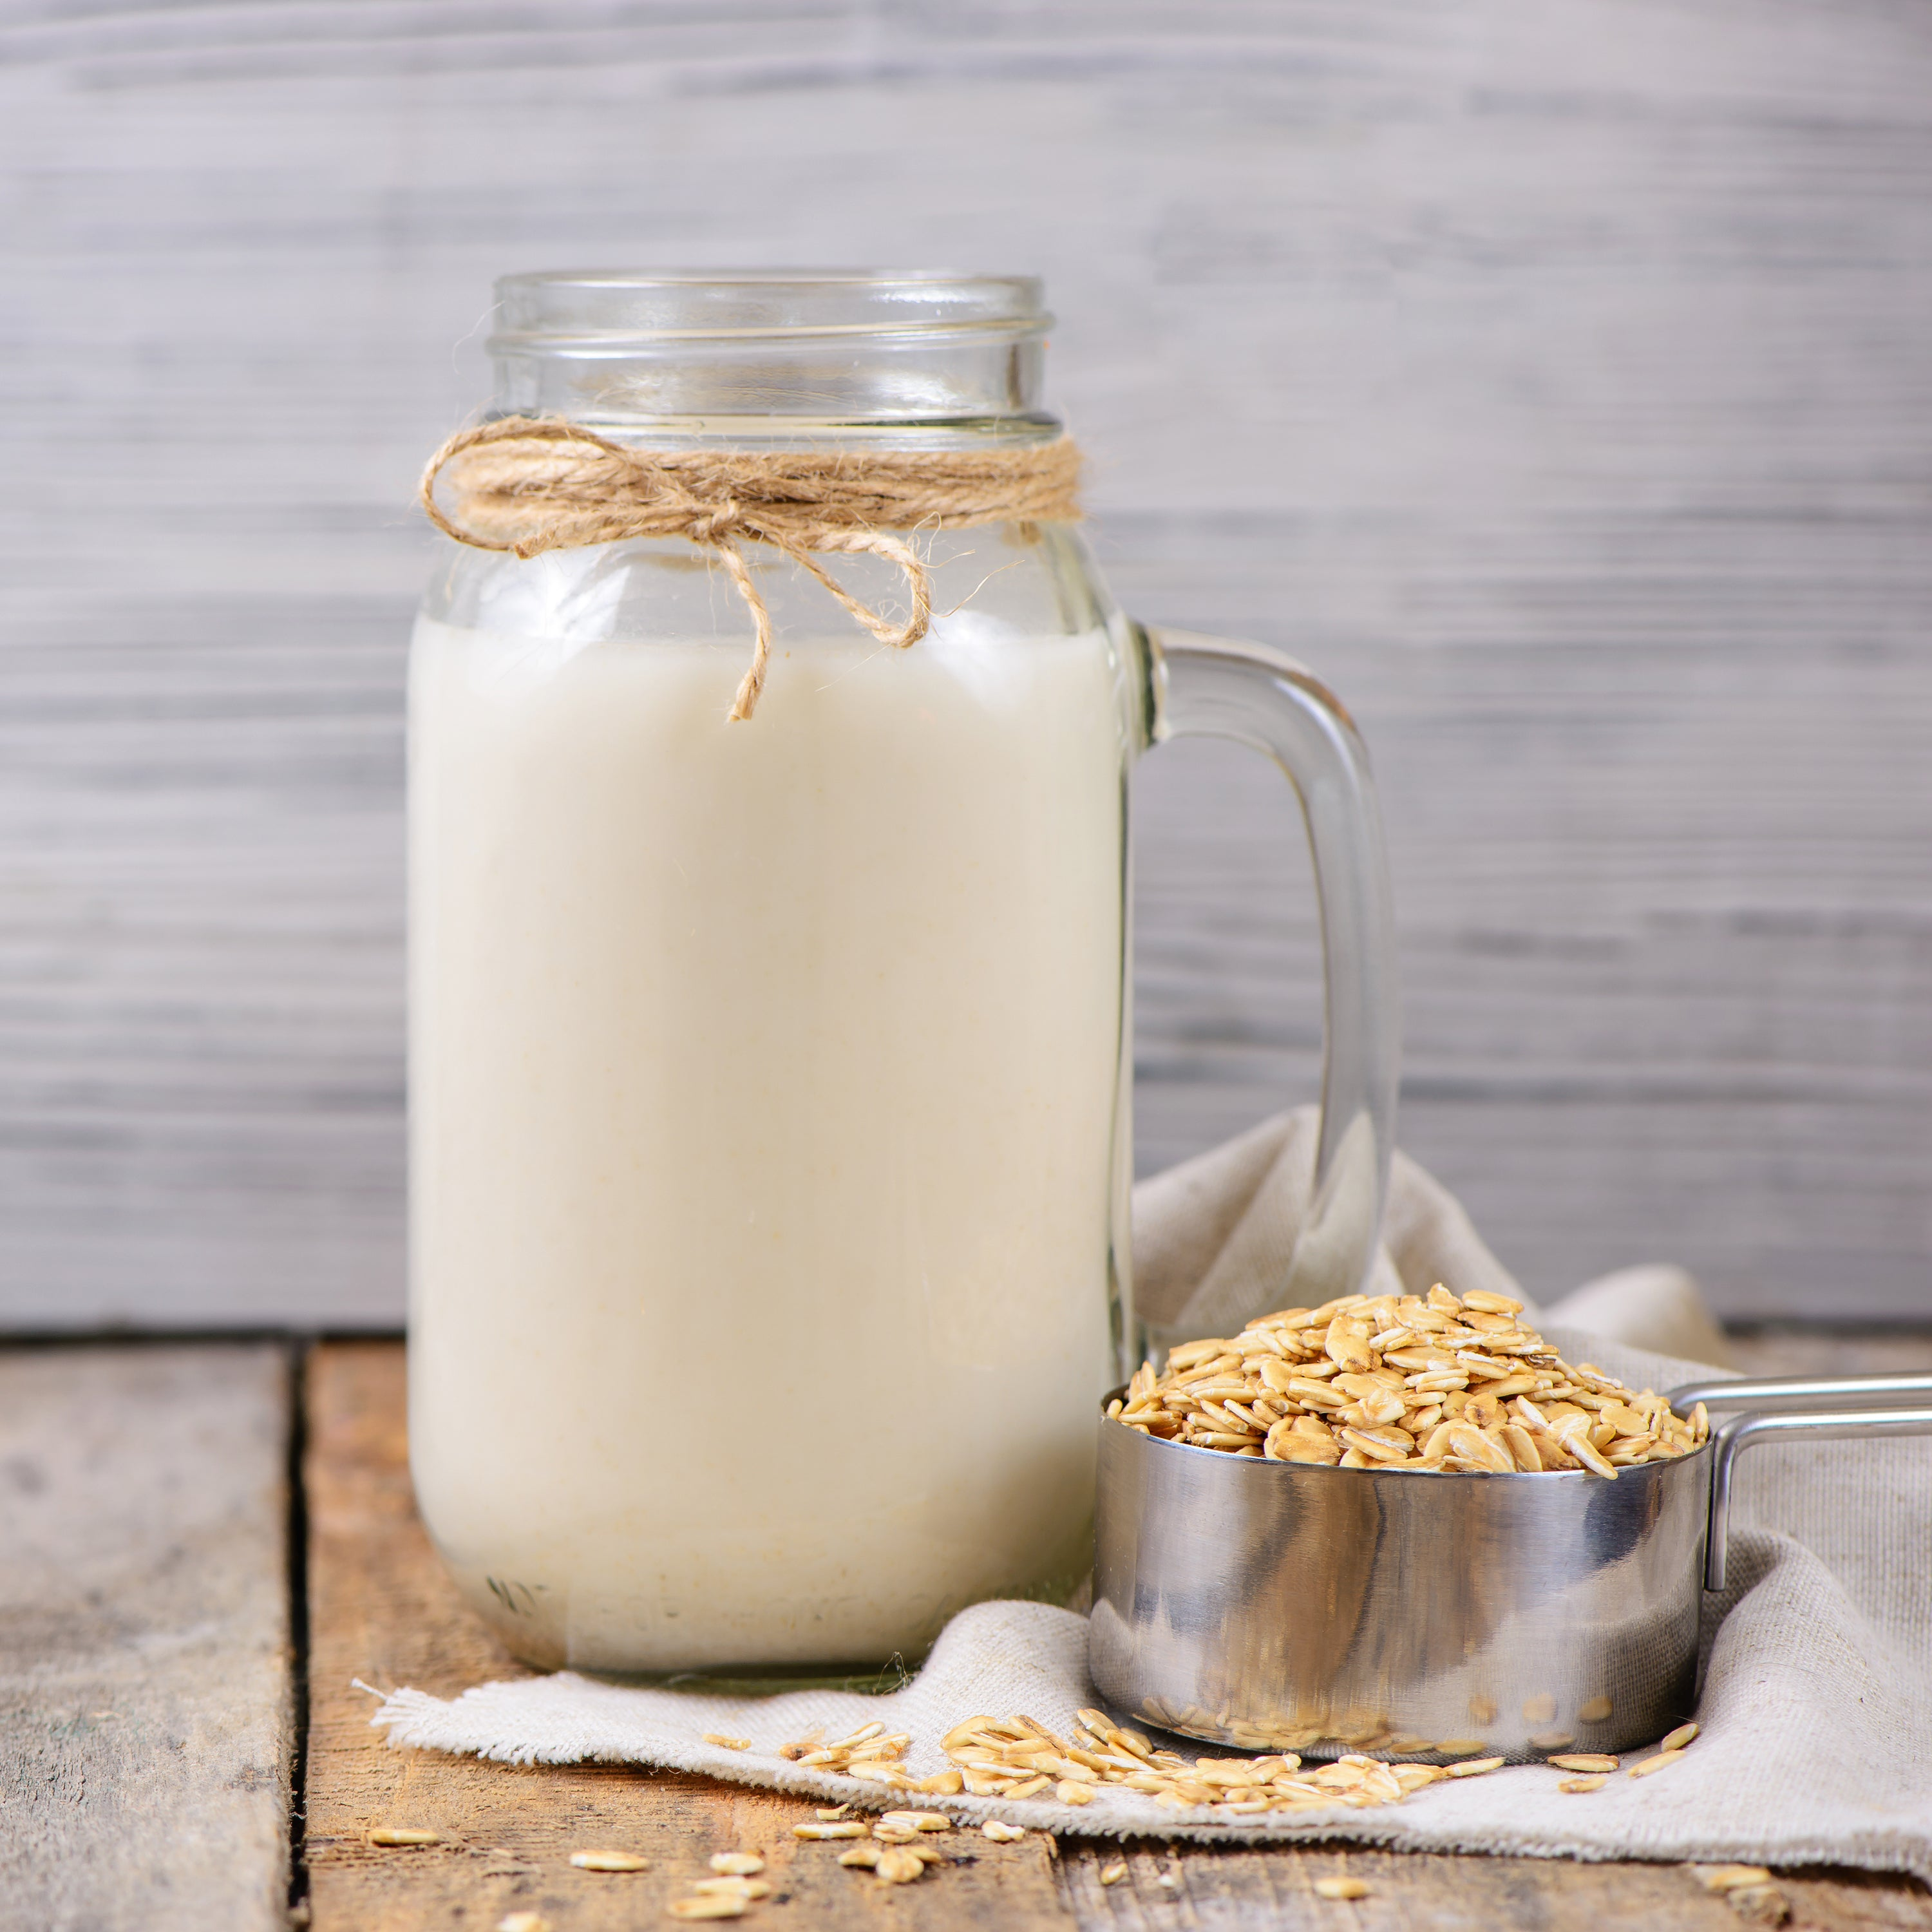 glass containers of oat milk and a measuring cup filled with oats